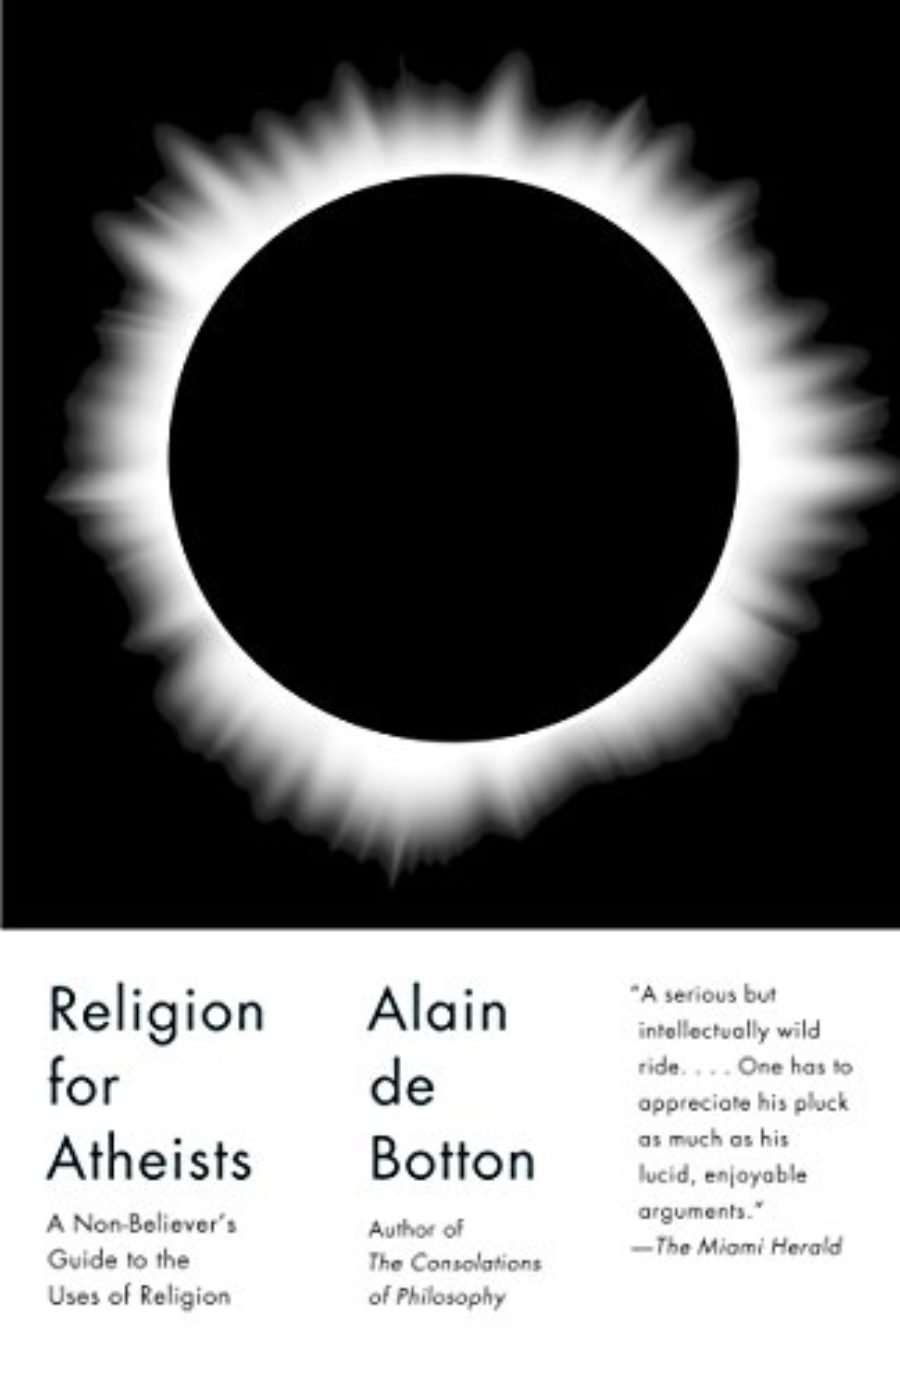 Alain de Botton — A School of Life for Atheists - The On Being Project